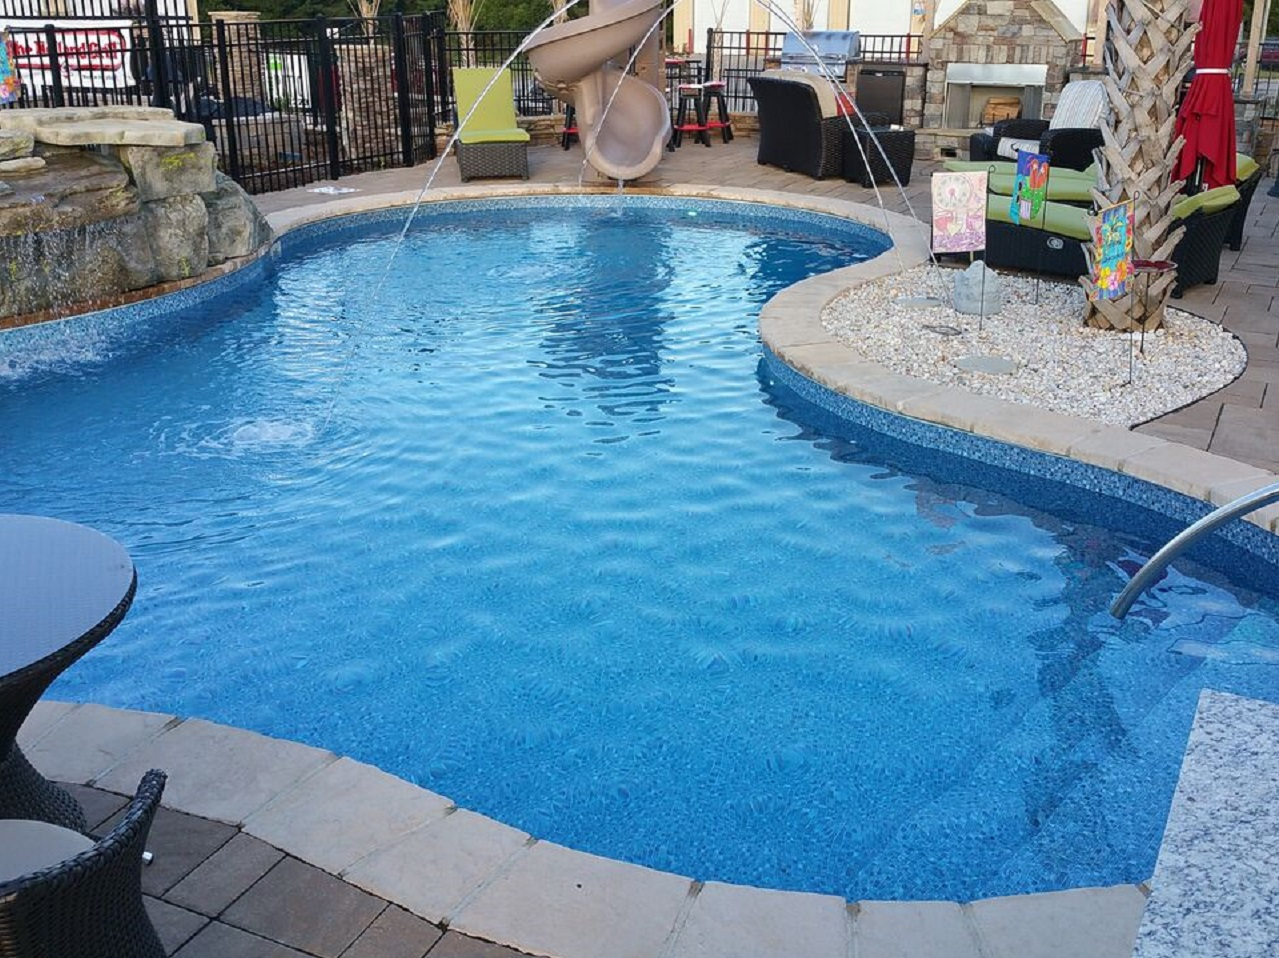 Pool Pictures Gallery : Raleigh vinyl pools above in ground swimming choice